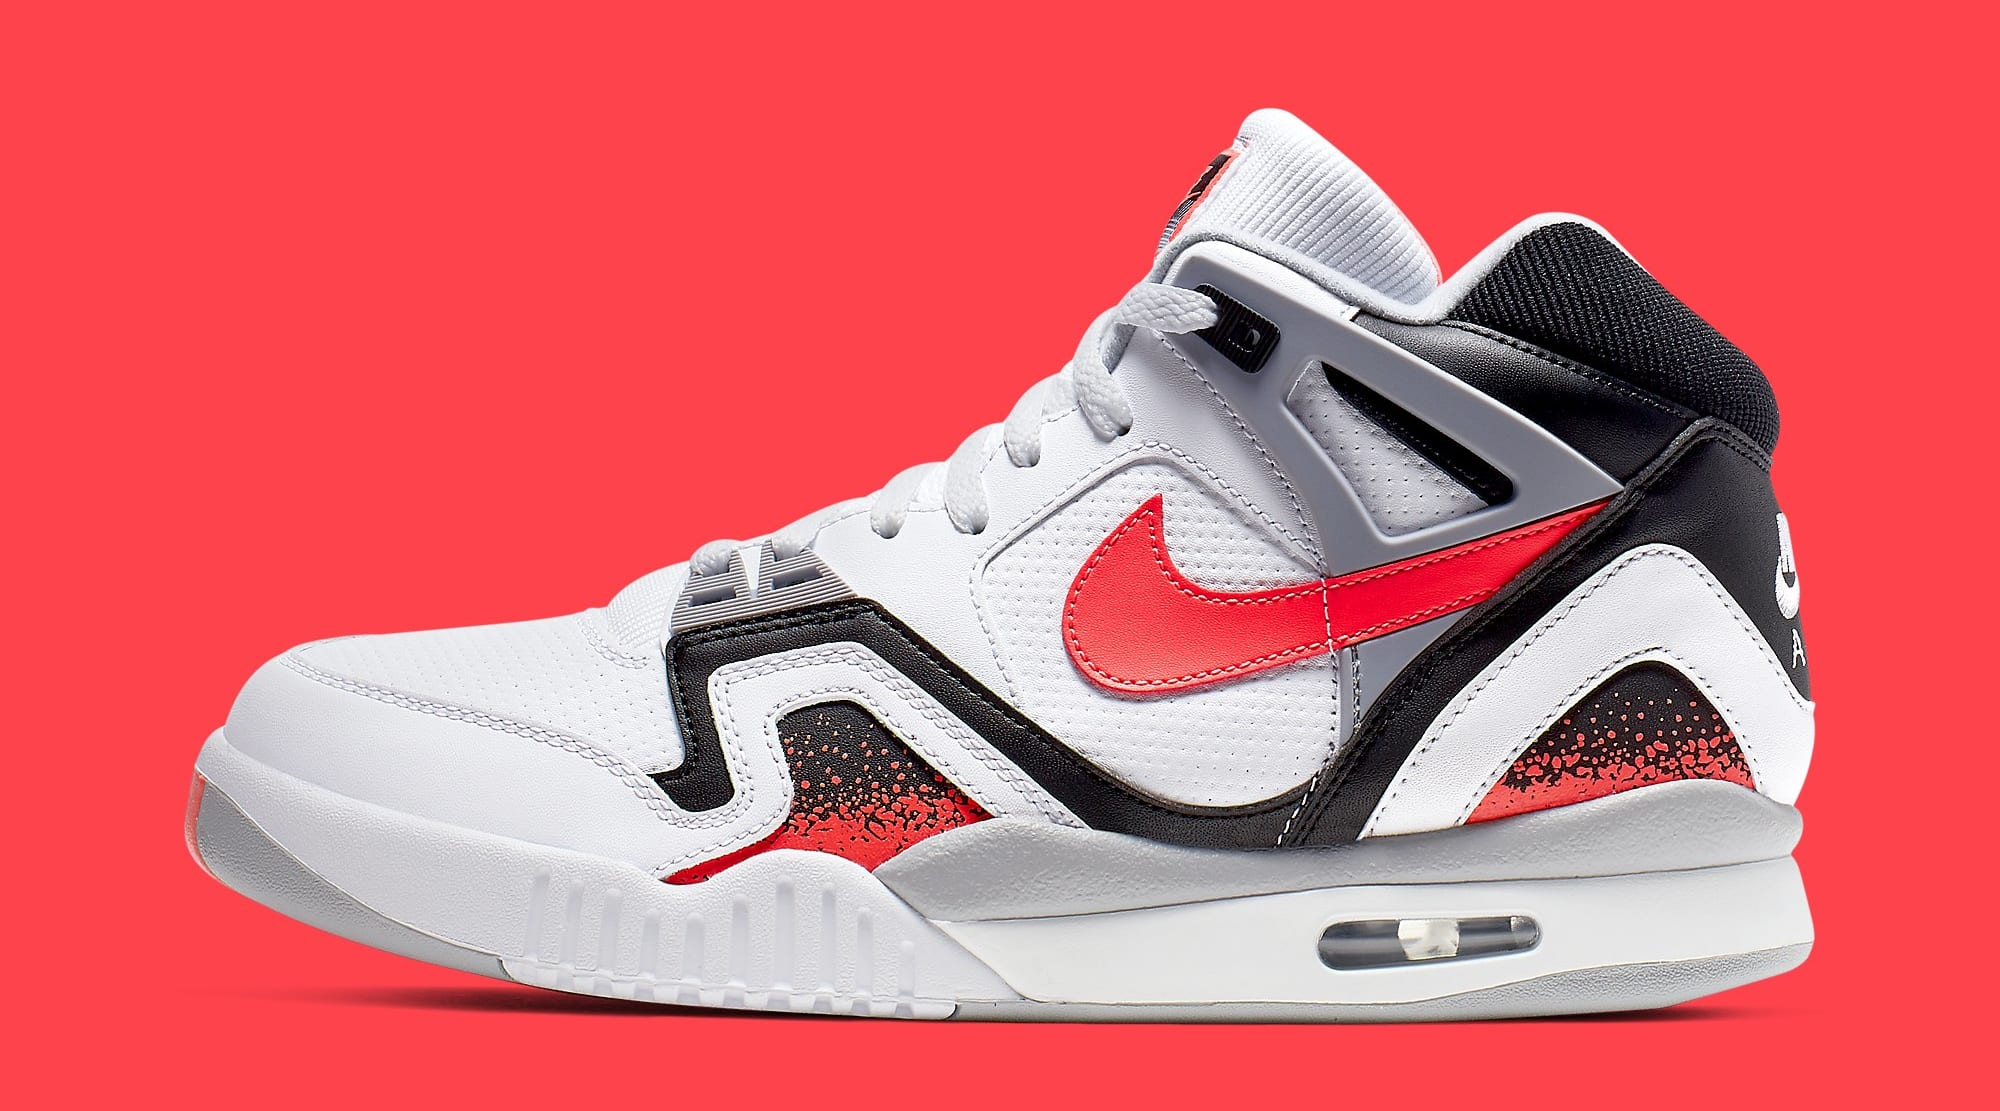 Nike Air Tech Challenge 2 'Hot Lava' CJ1437-100 (Lateral)